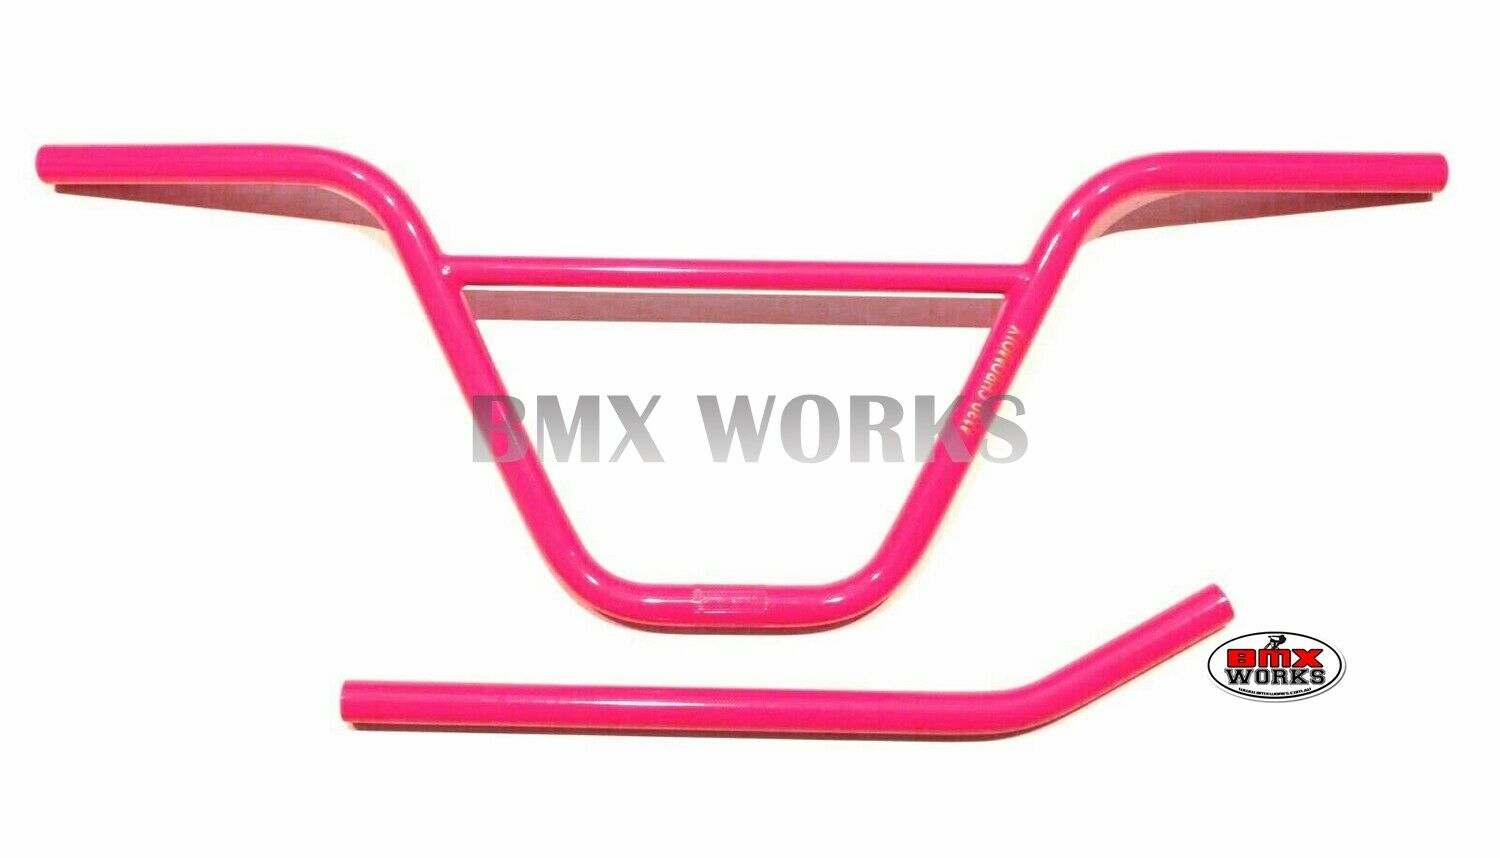 ProBMX Pink Seat Post 22.2mm x 450mm Chrome Moly Layback Old School BMX Style